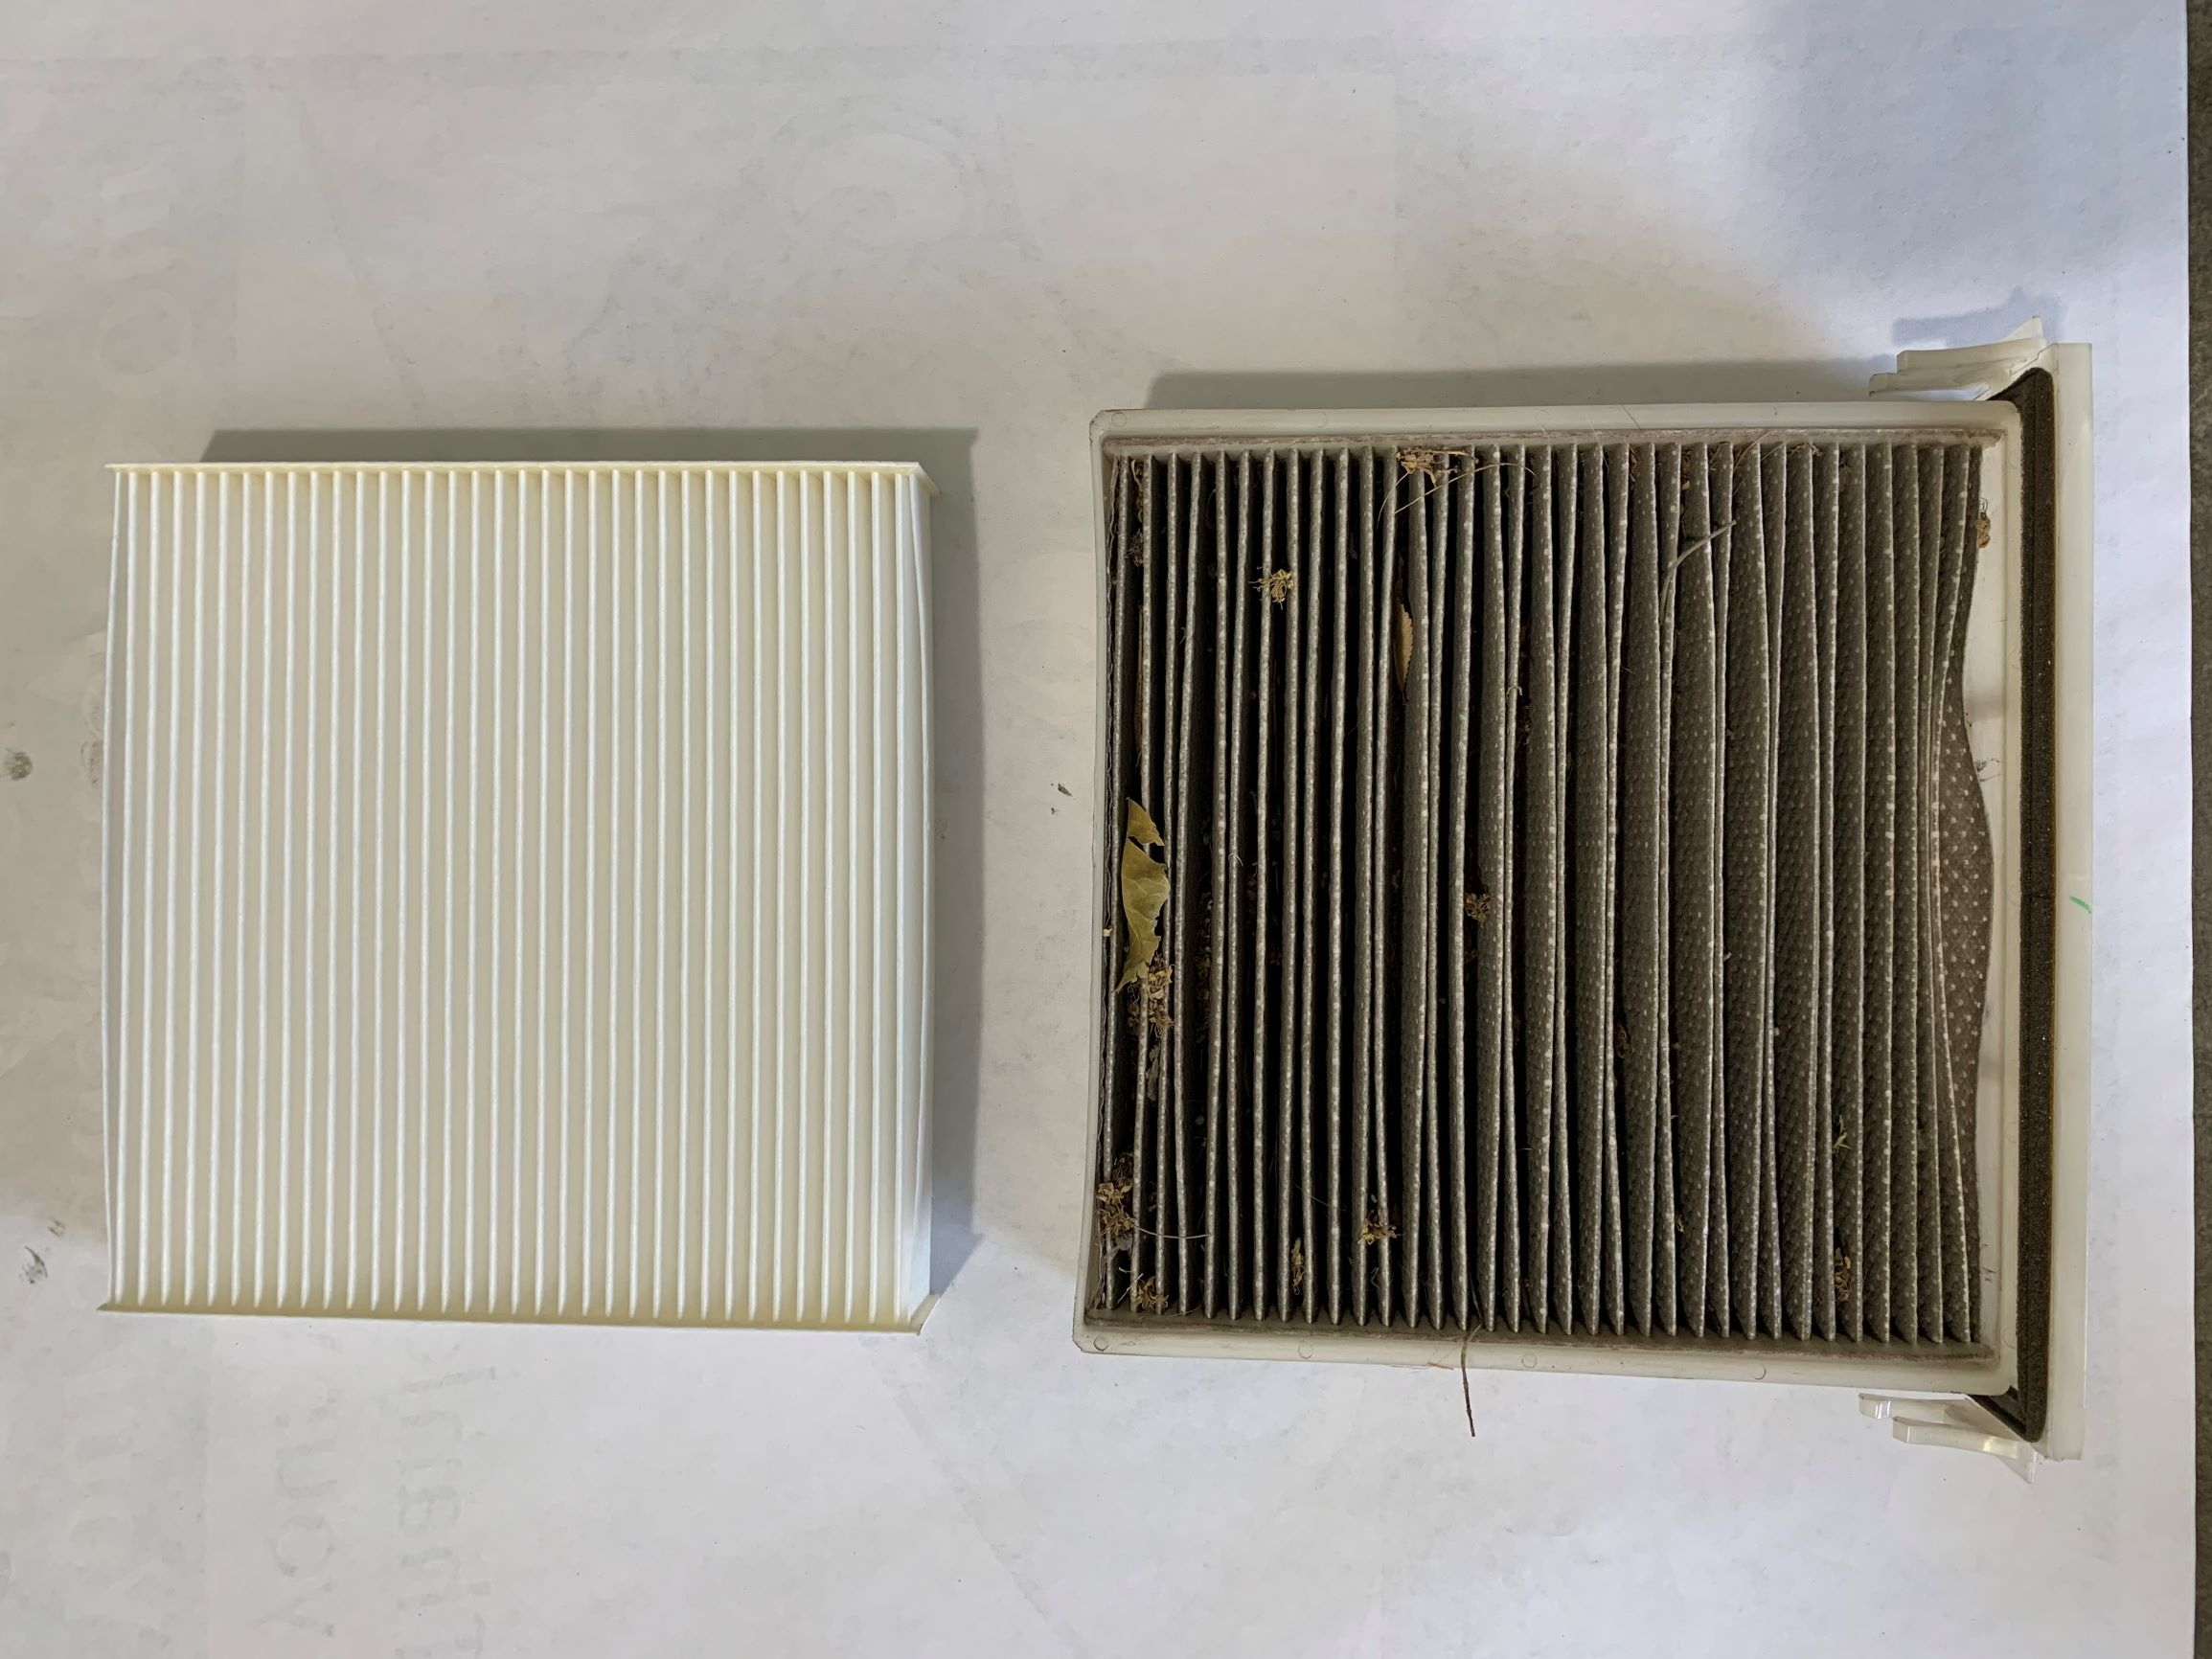 Cabin Air Filter Mercie J Auto Mesa 85205 Air Conditioning